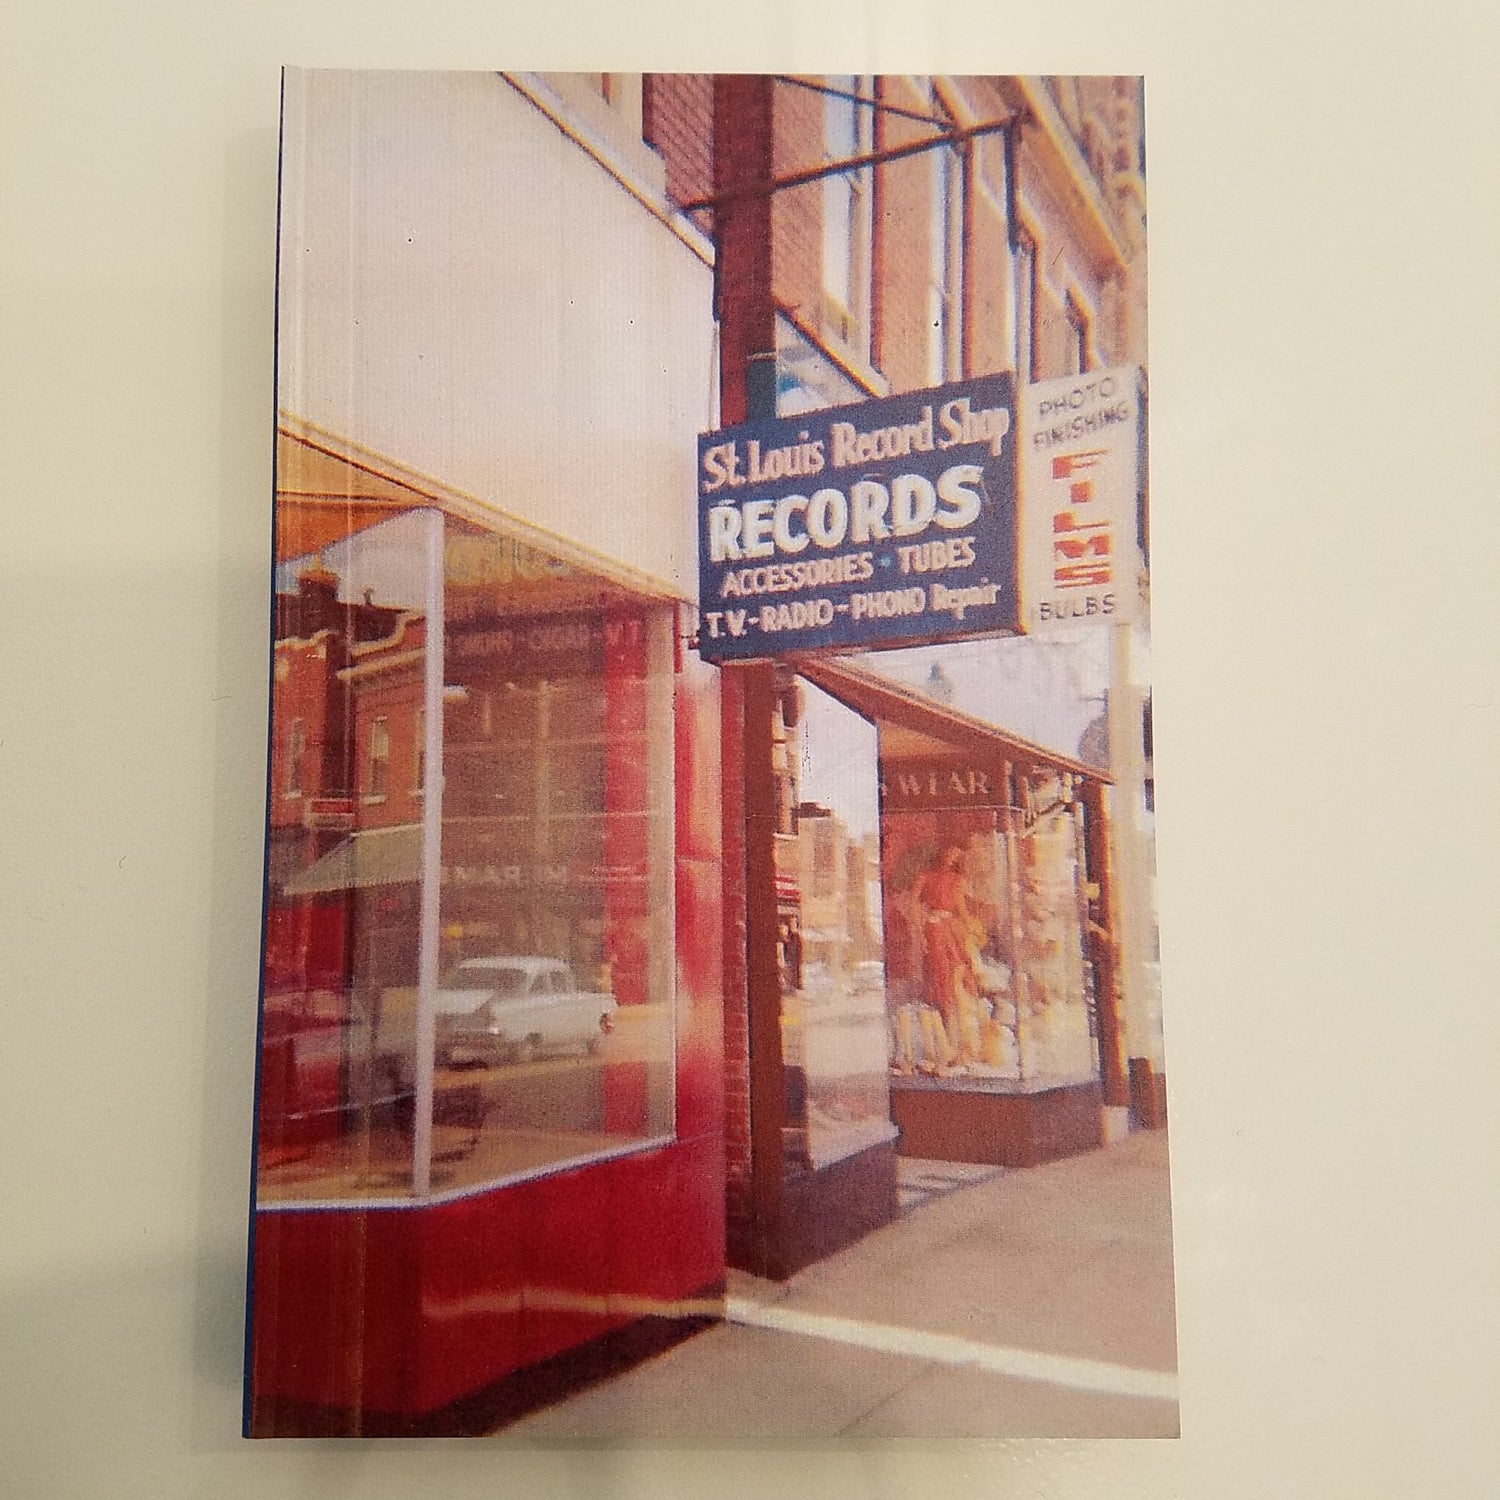 St. Louis Record Shop